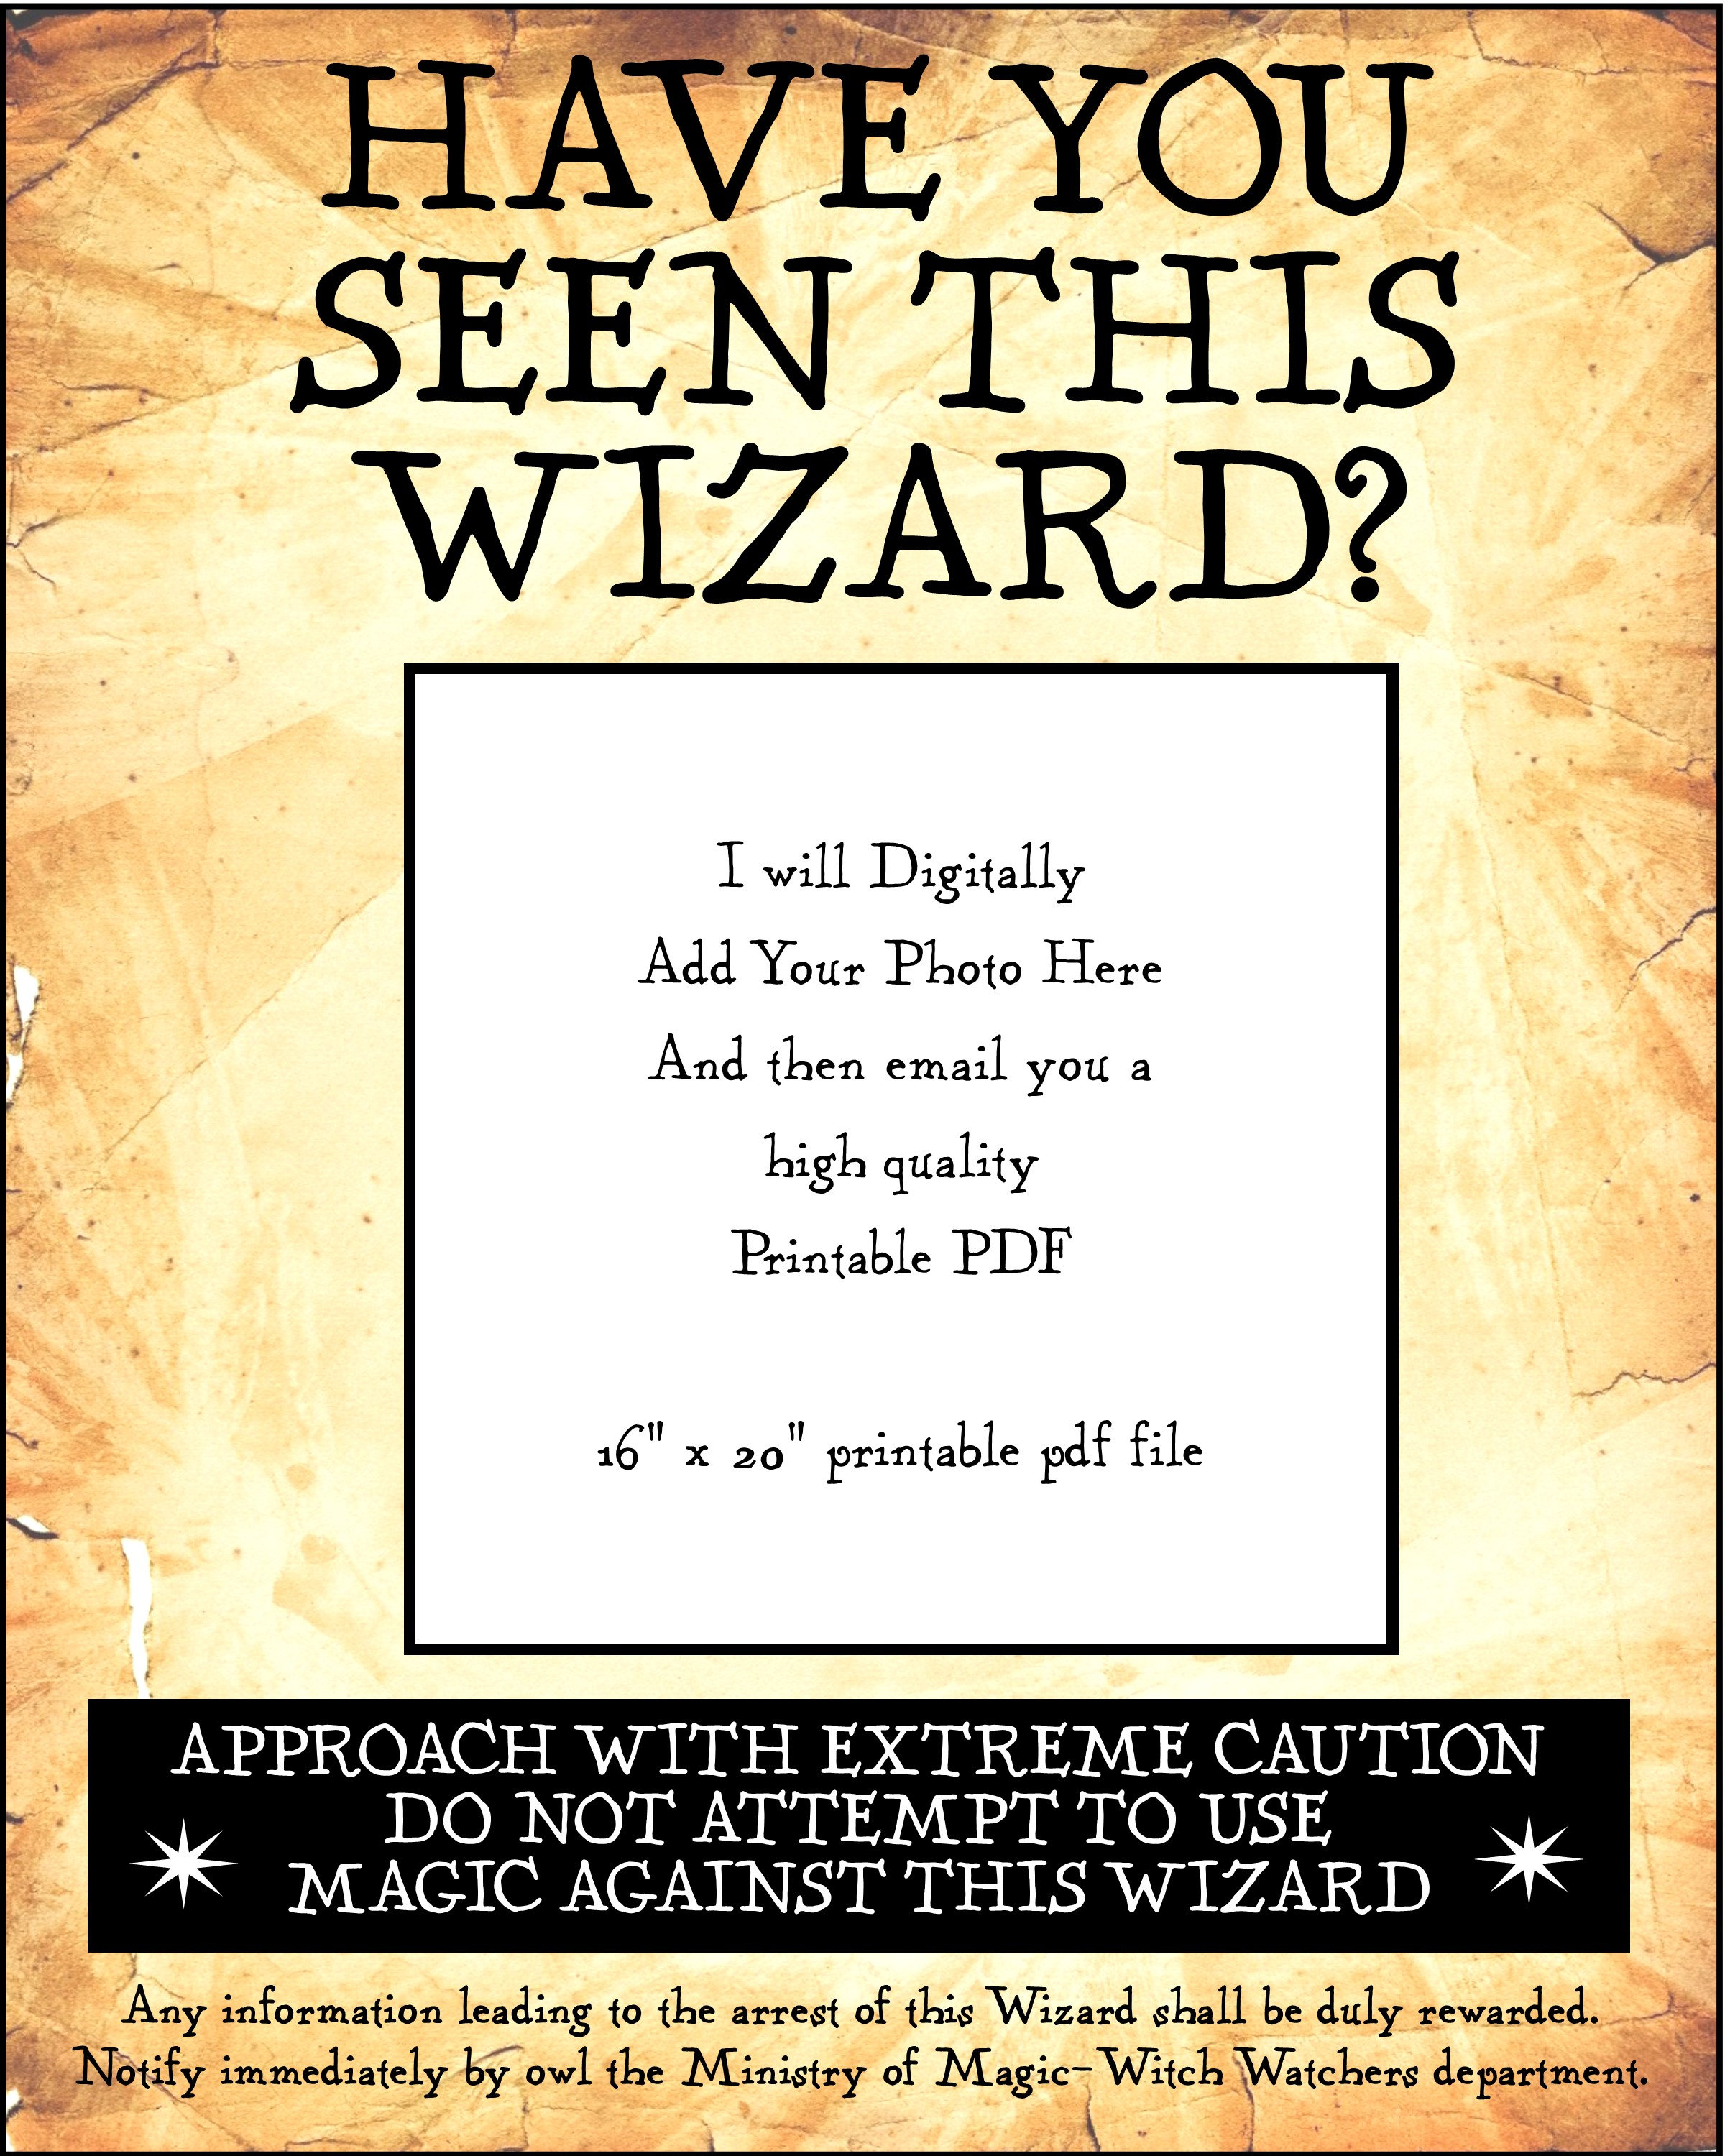 Have You Got Blue Eyes Learn What Make Up Will Make Them: Have You Seen This Wizard/Wizards 16 X 20 Inch Digital PDF